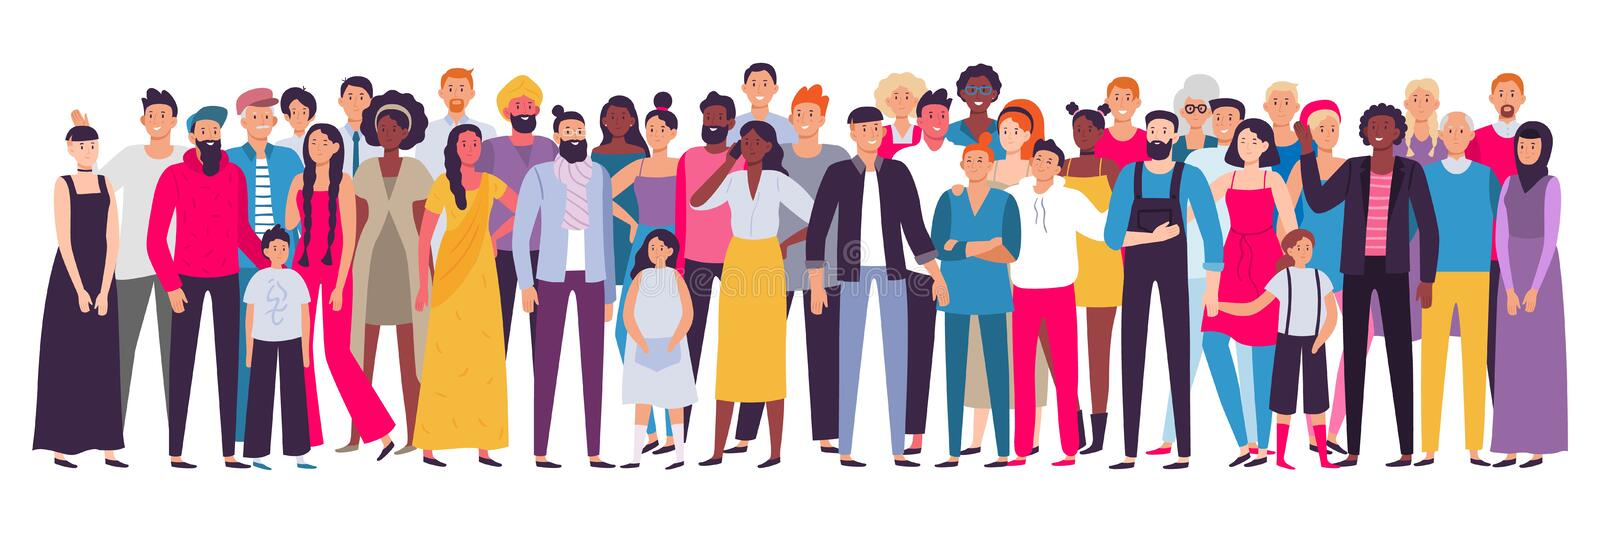 Multiethnic group of people. Society, multicultural community portrait and citizens. Young, adult and elder people. Aging african and asian ladies or european royalty free illustration